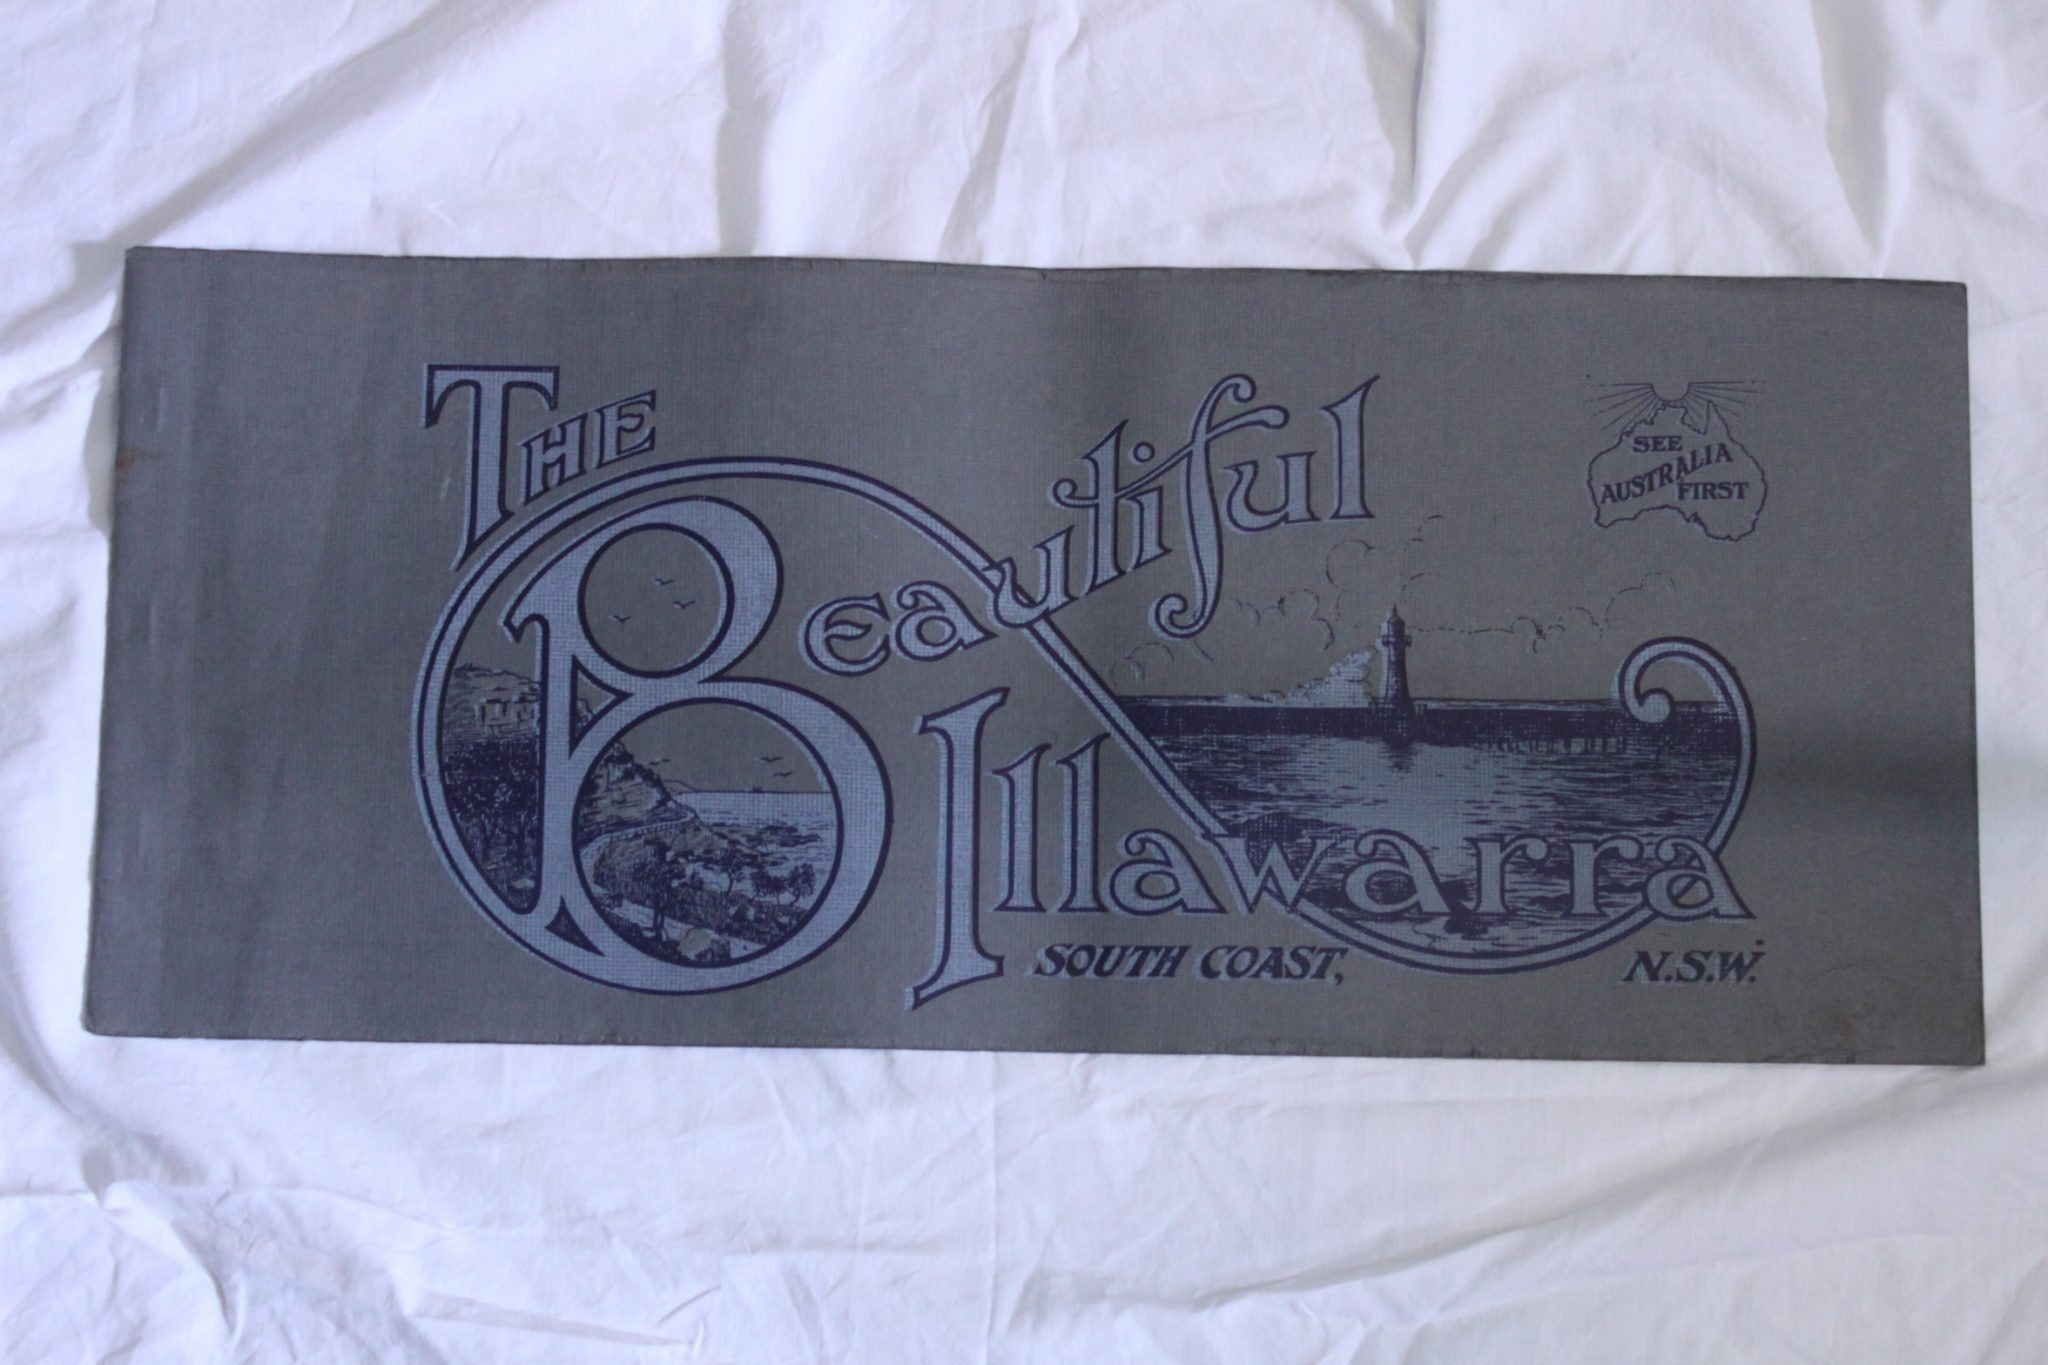 Mid 1920's travel brochure for the Illawarra